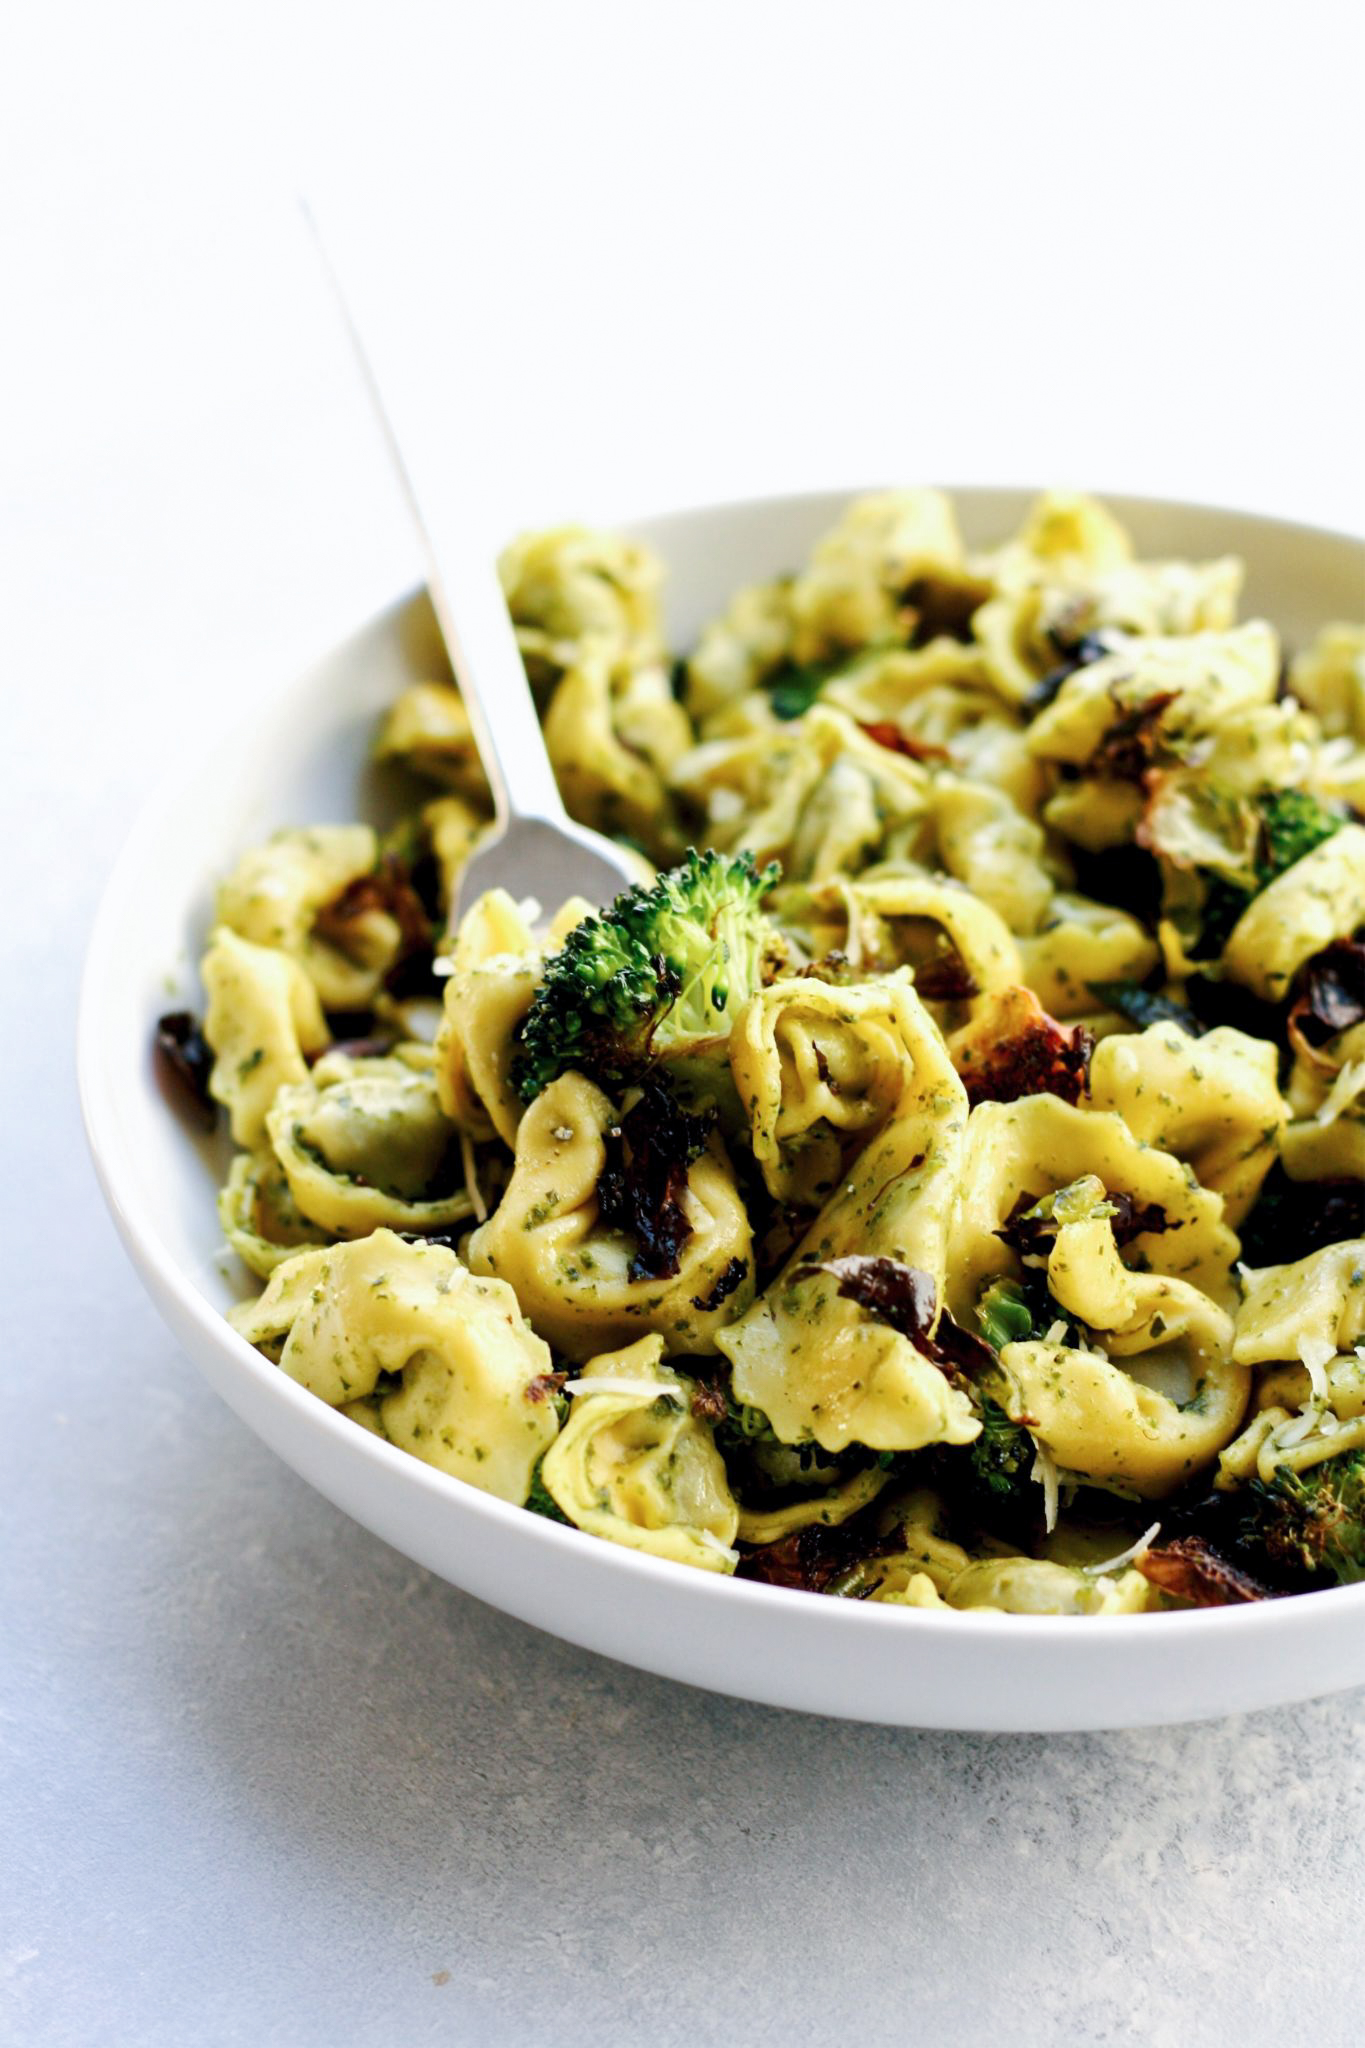 pesto tortellini with roasted vegetables // cait's plate